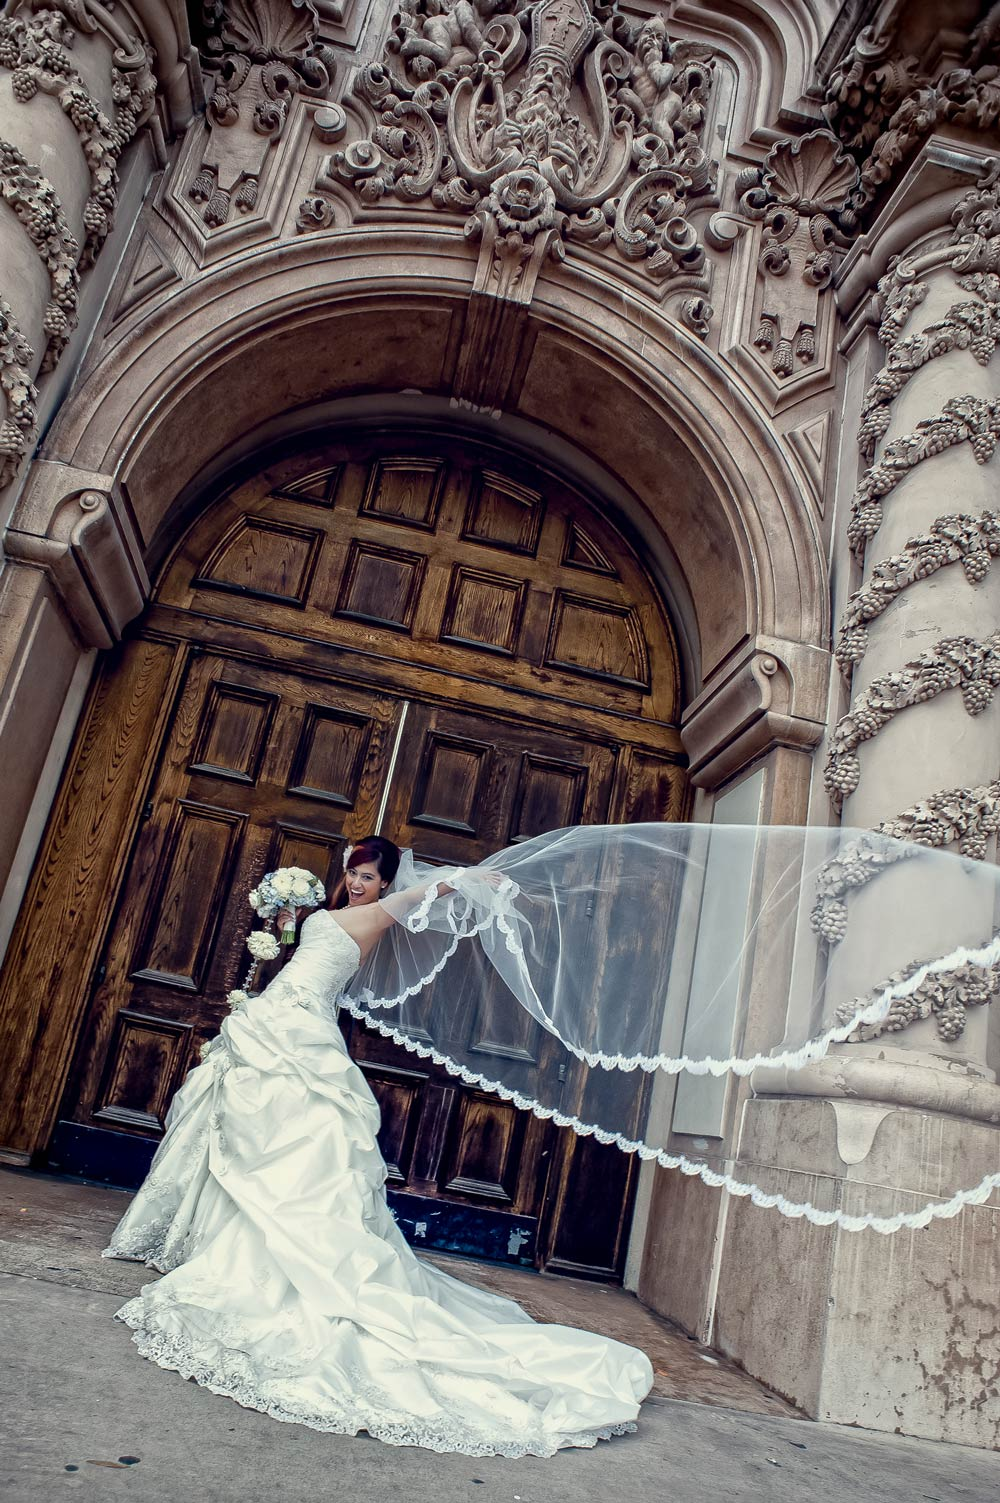 Wedding Photography | Balboa Park | Mel and Tim Photography